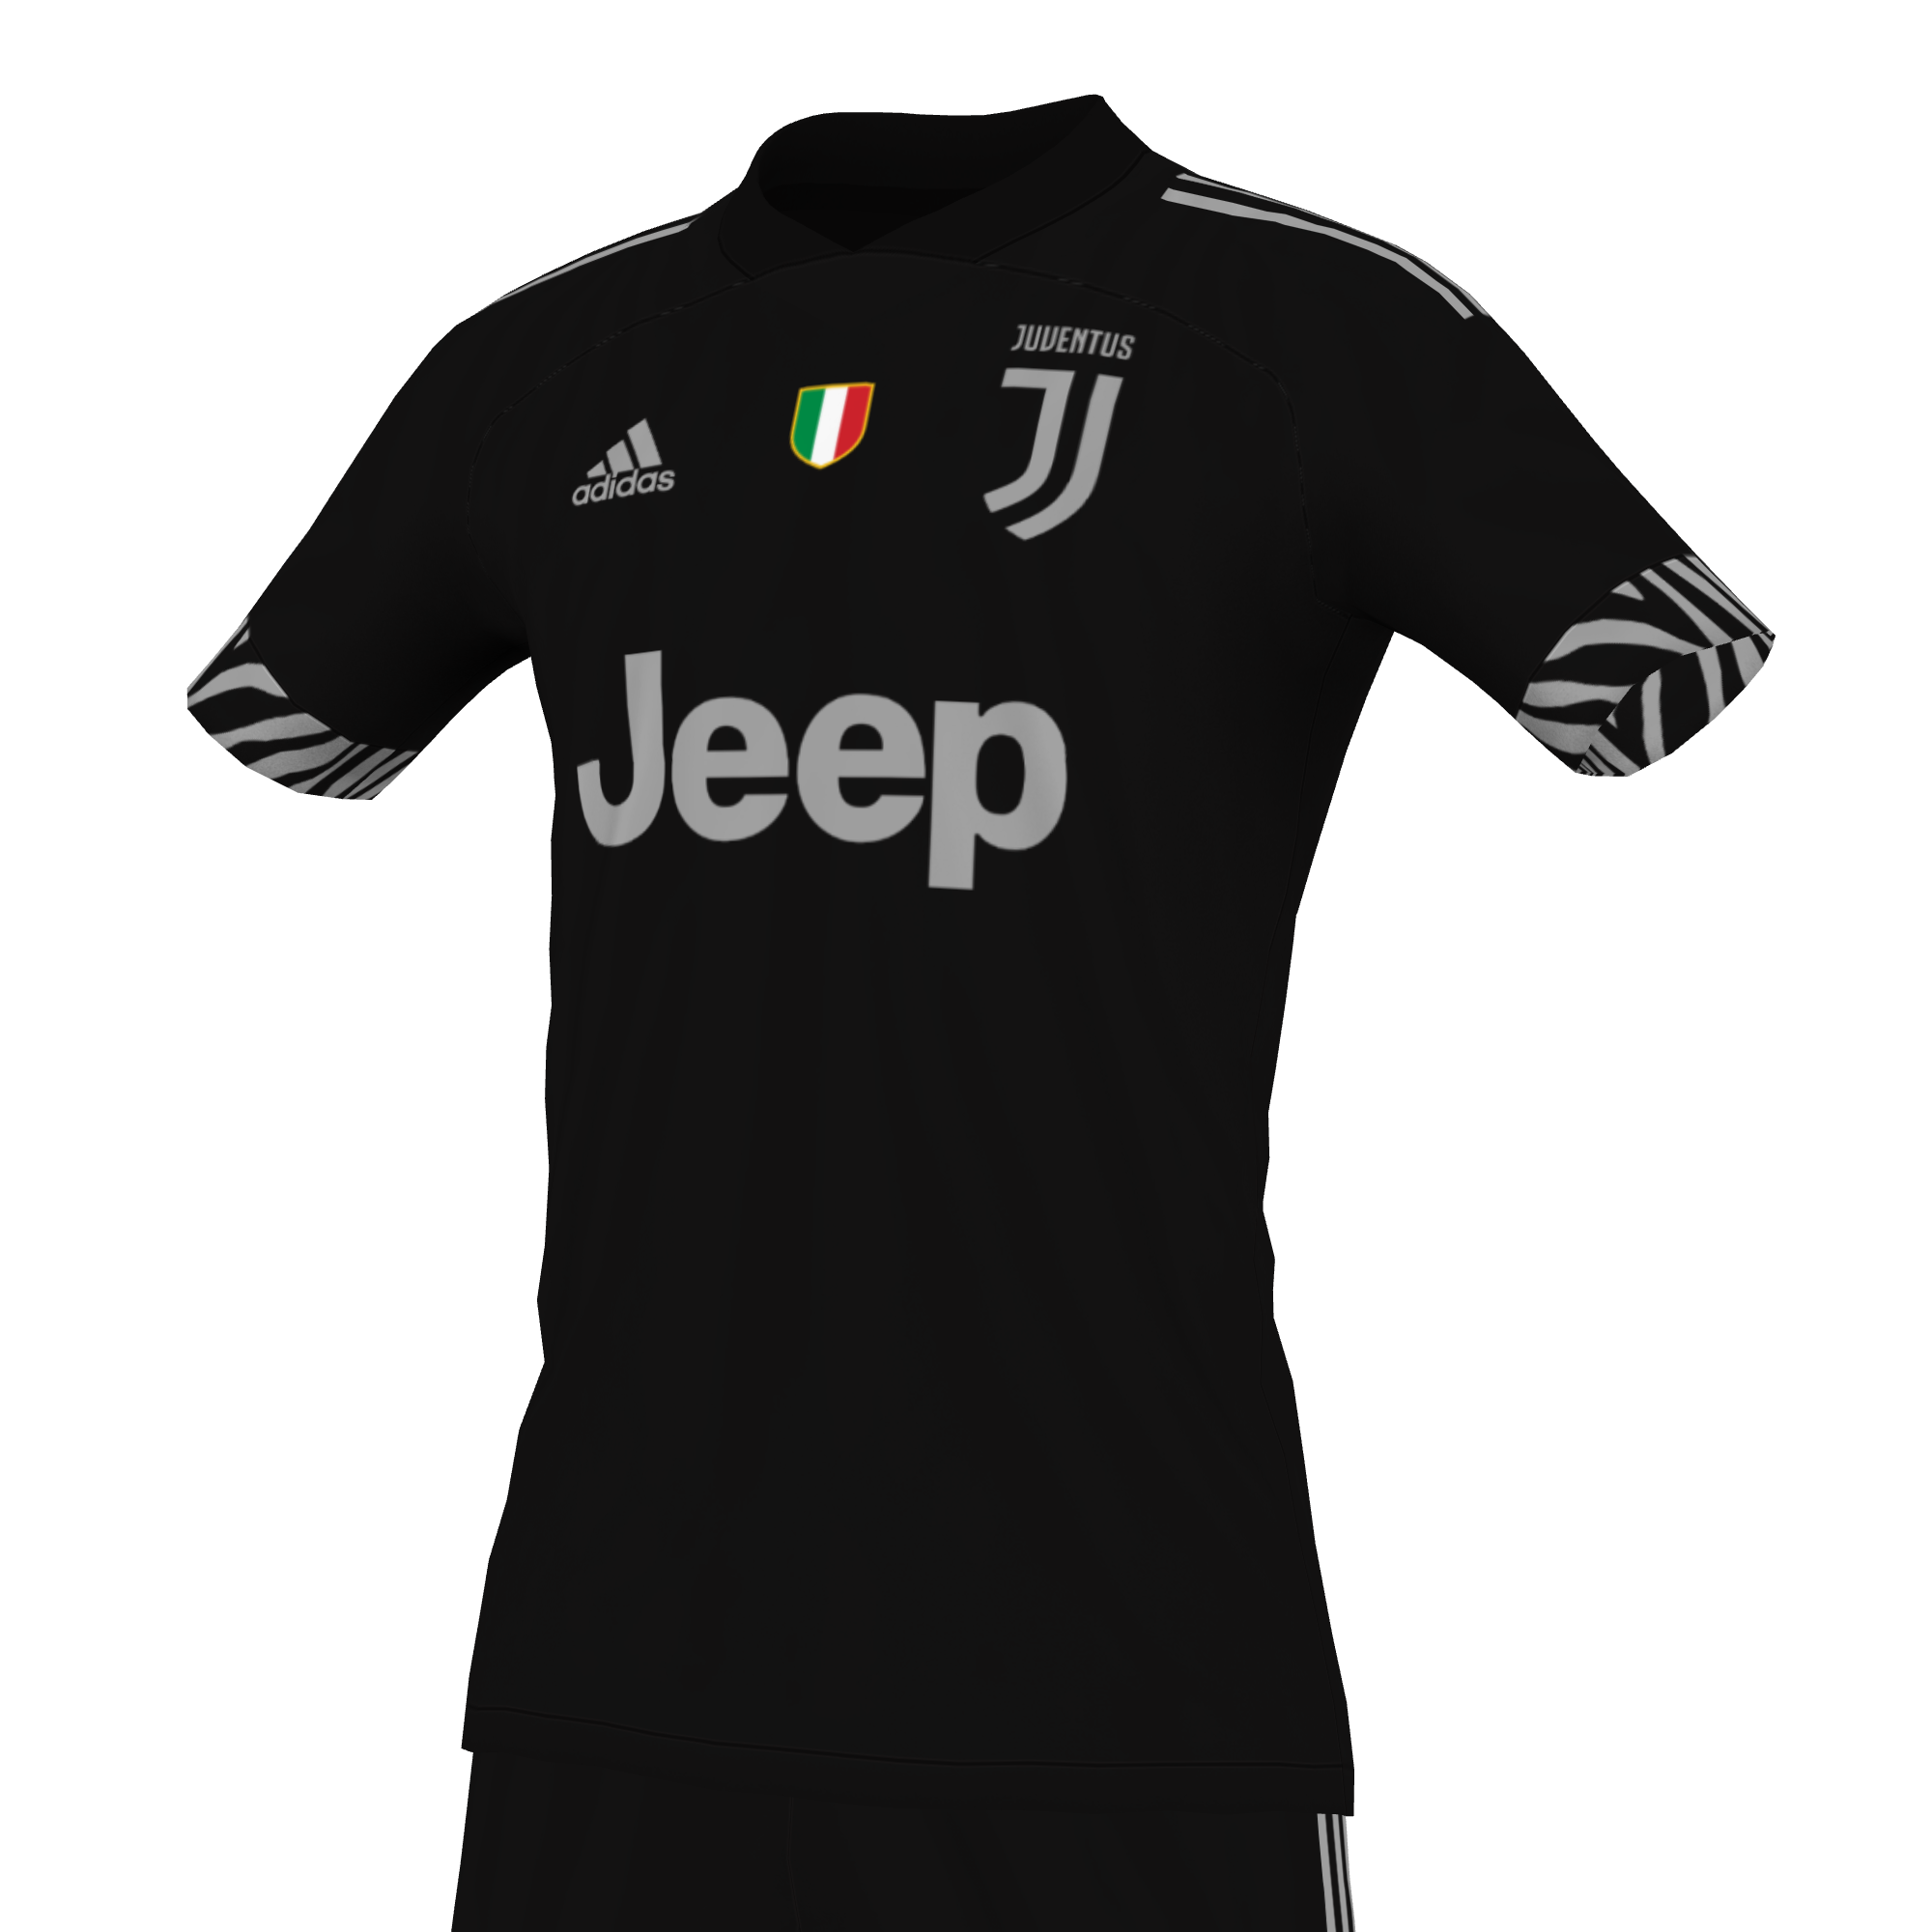 Juventus 21 Away Remake